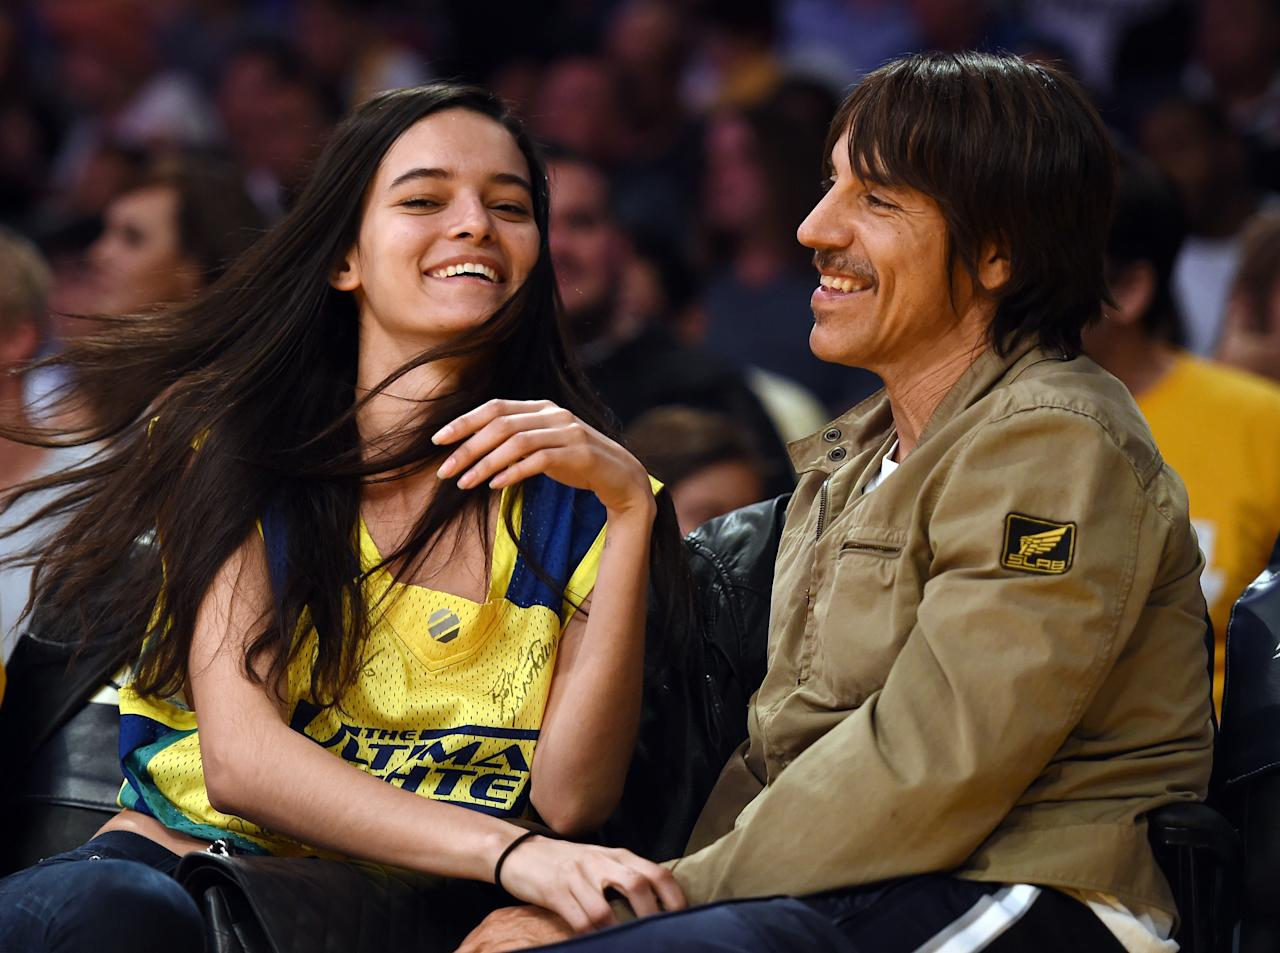 Wanessa Milhomem and Anthony Kiedis of The Red Hot Chili Peppers sit court-side during the Lakers v. Hawks game in 2015.